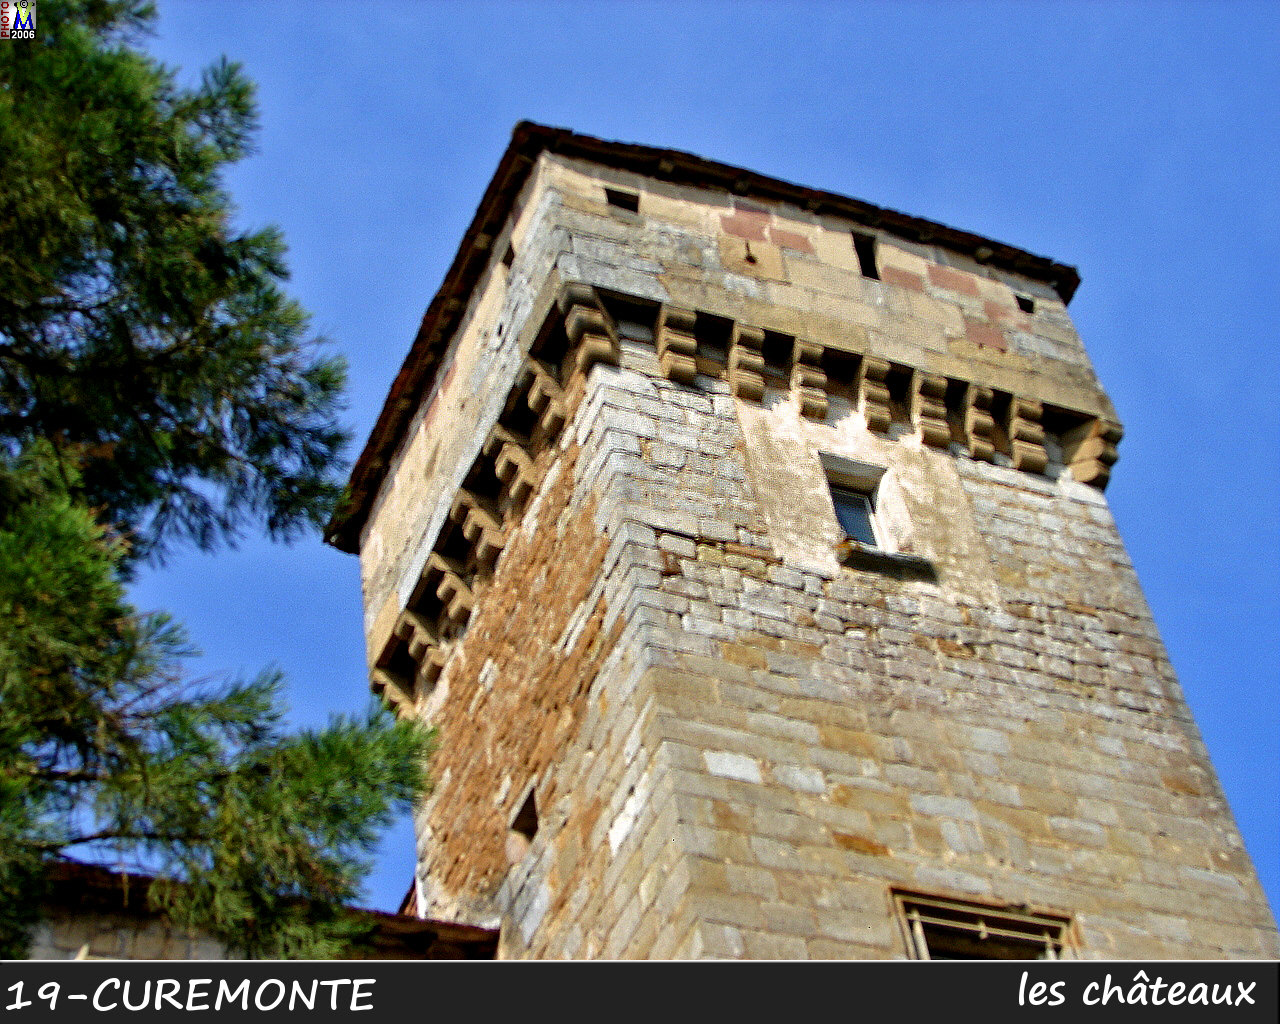 19CUREMONTE_chateau_124.jpg